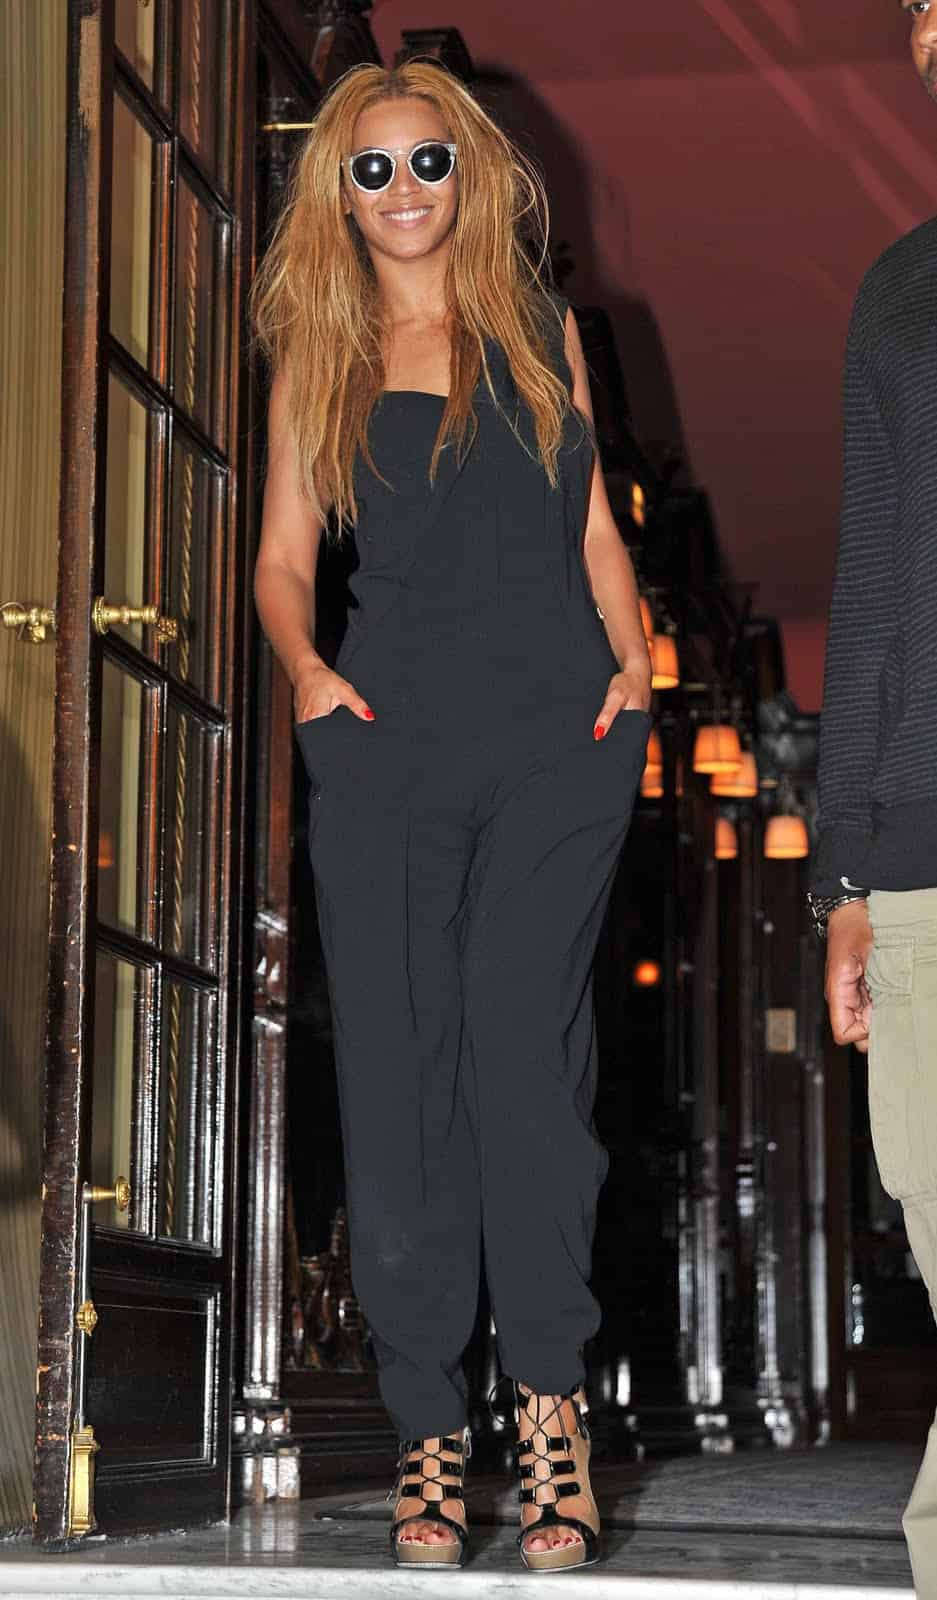 beyonce-casul-chic-style